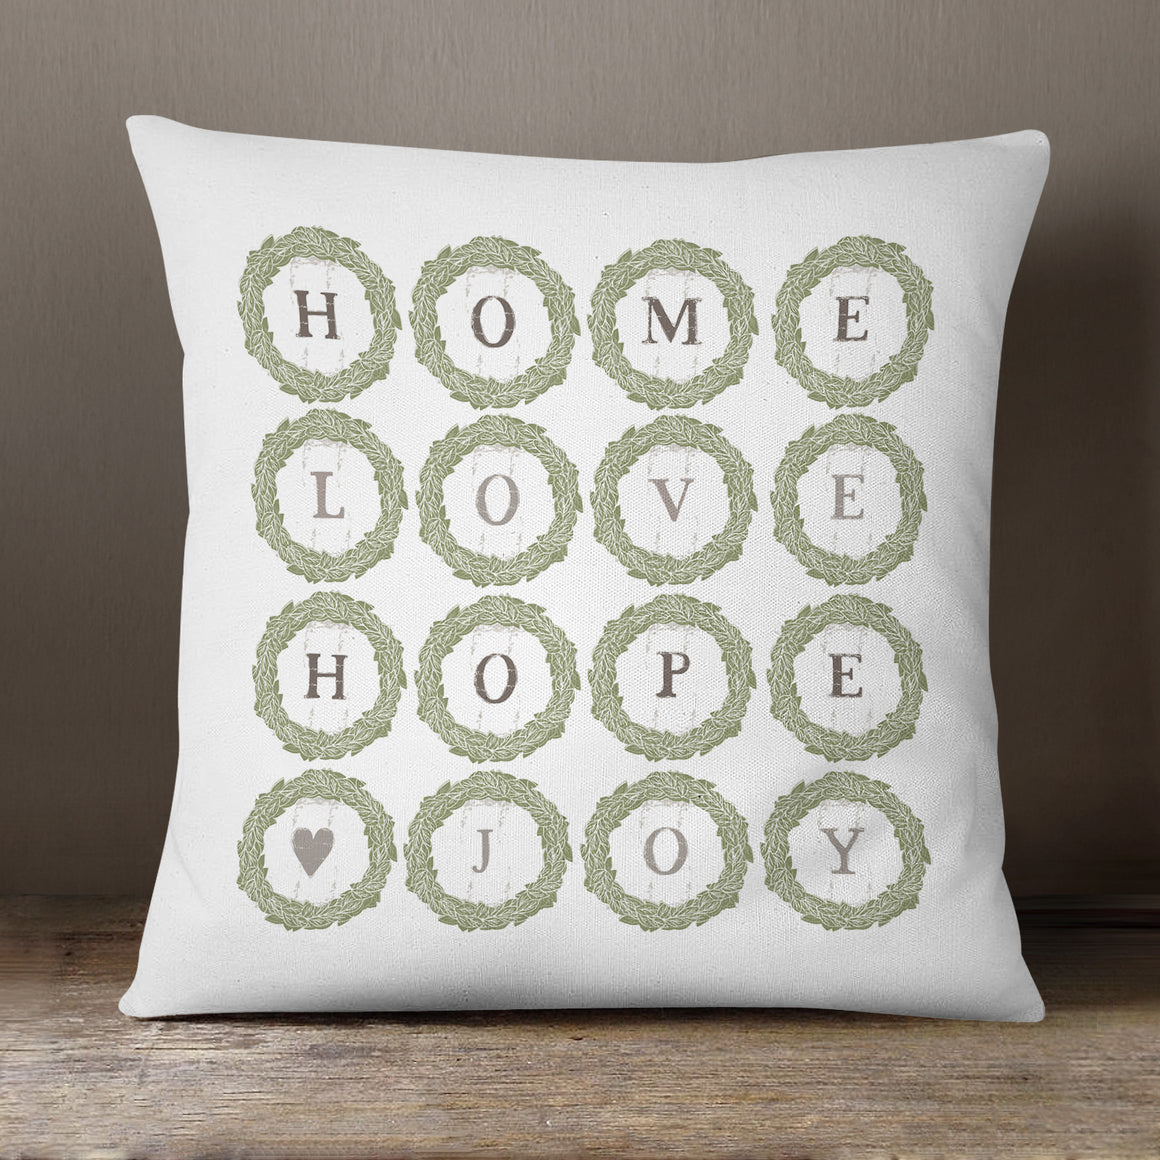 Home Love Hope Joy by Vicky Yorke Designs - 45 cm Cushion